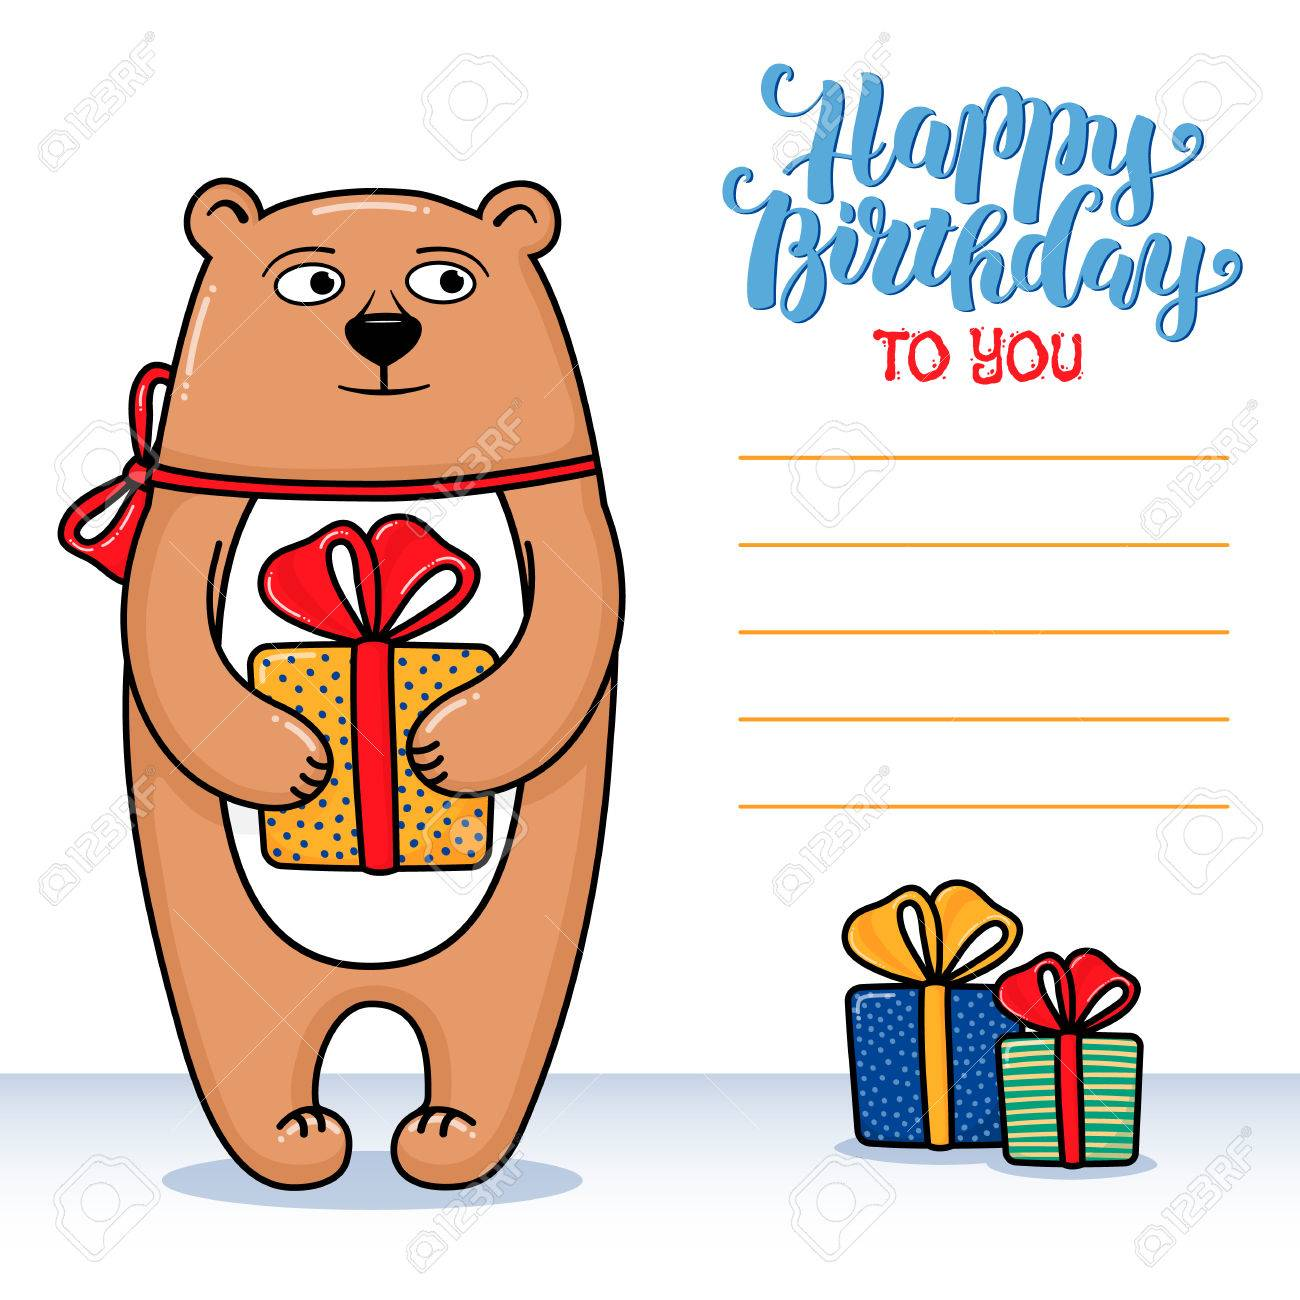 funny birthday card signatures ; 67652993-happy-birthday-greeting-card-with-bear-holding-a-gift-lettering-and-lines-for-congratulations-and-si